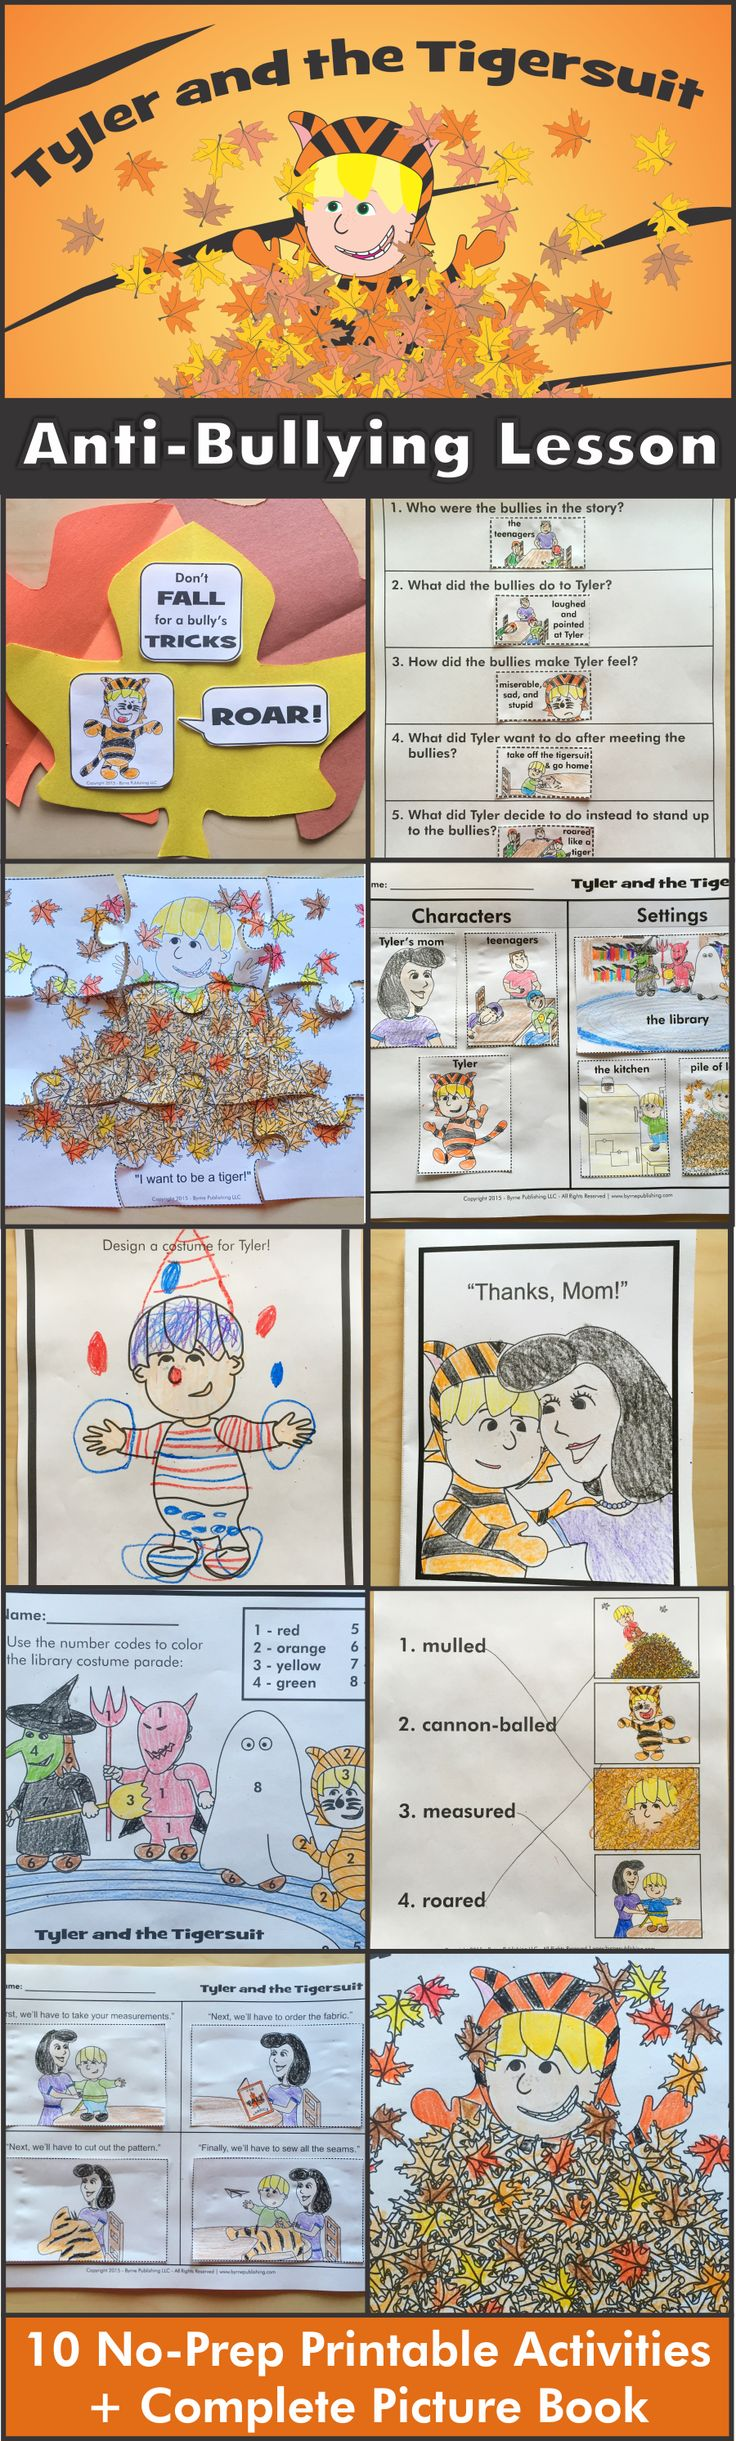 October is National Bullying Prevention Month! This lesson uses kids' natural interest in Halloween to discuss bullying. It includes 10 no-prep printable activities and a picture book. https://www.teacherspayteachers.com/Product/Anti-Bullying-Halloween-Lesson-with-10-Activities-FREE-picture-book-2127905